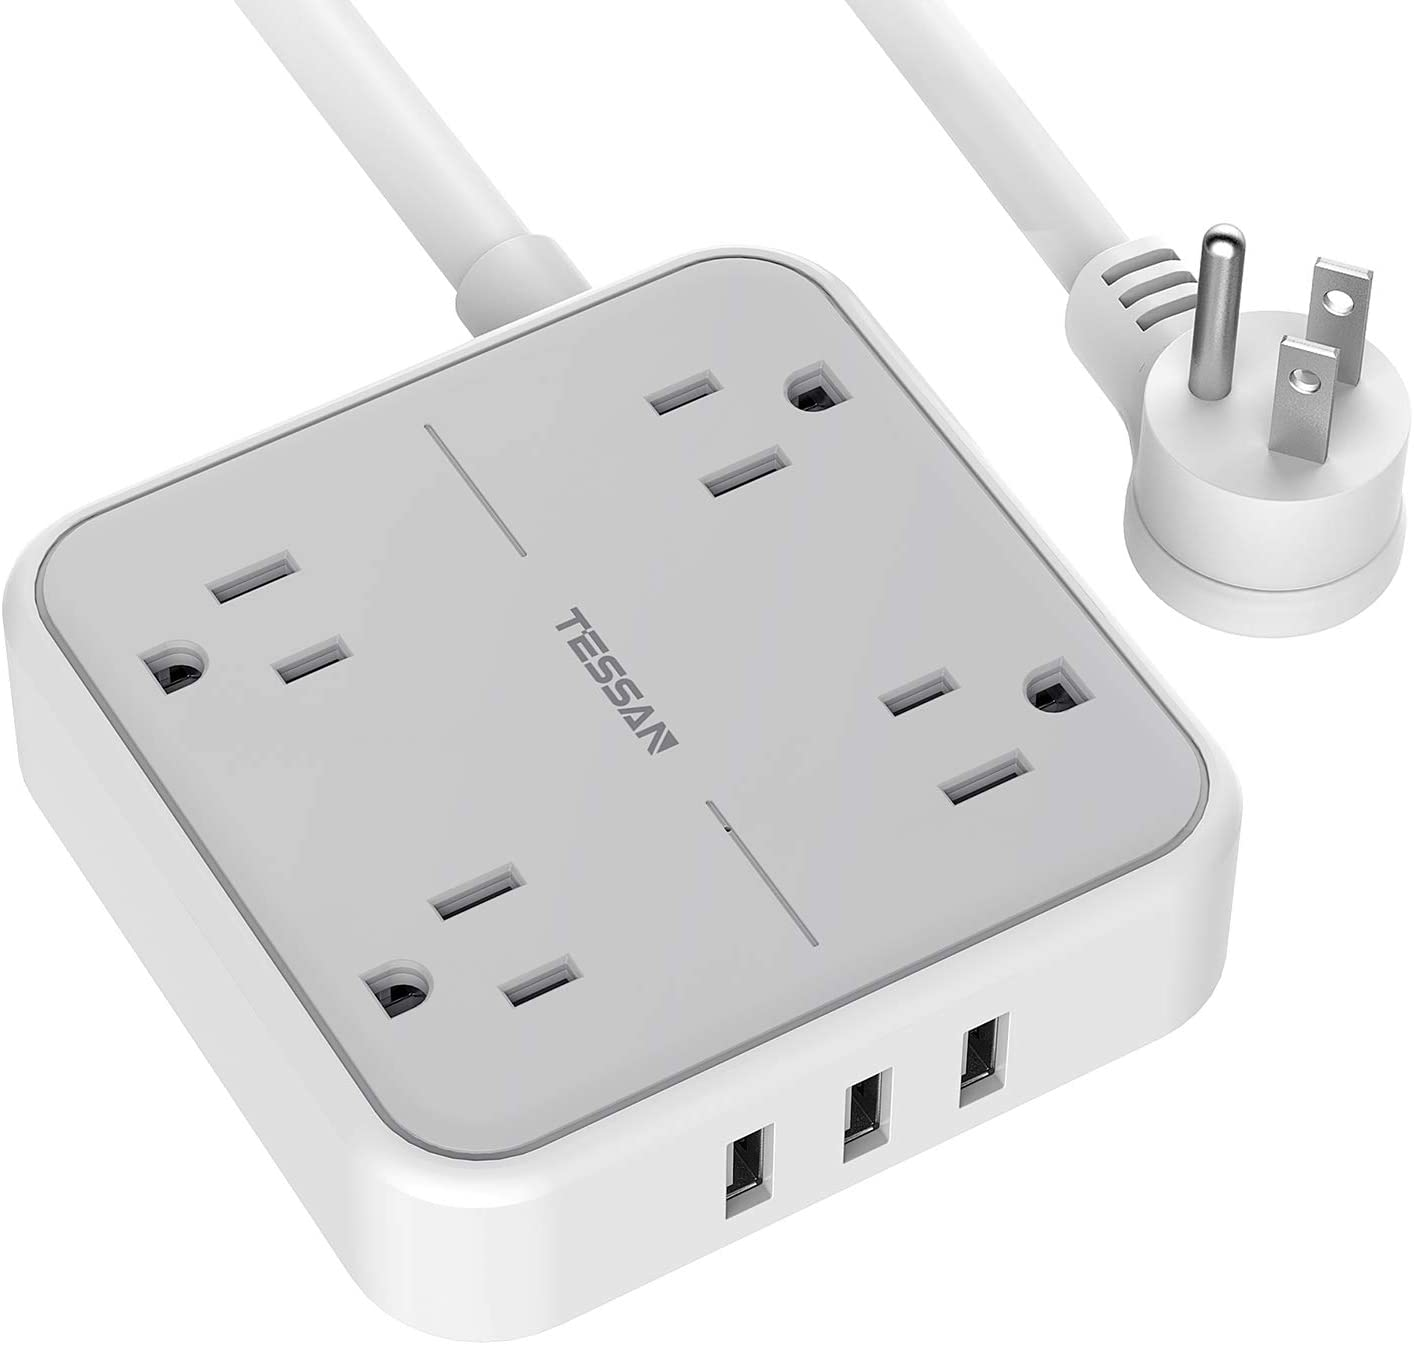 Power Strip with USB Ports, TESSAN Mountable Flat Plug Extension Cord with 4 Widely Spaced Outlets, 3 USB Charger 5 FT Power Cord, Compact Size Charging Station for Travel, Cruise Ship Essentials